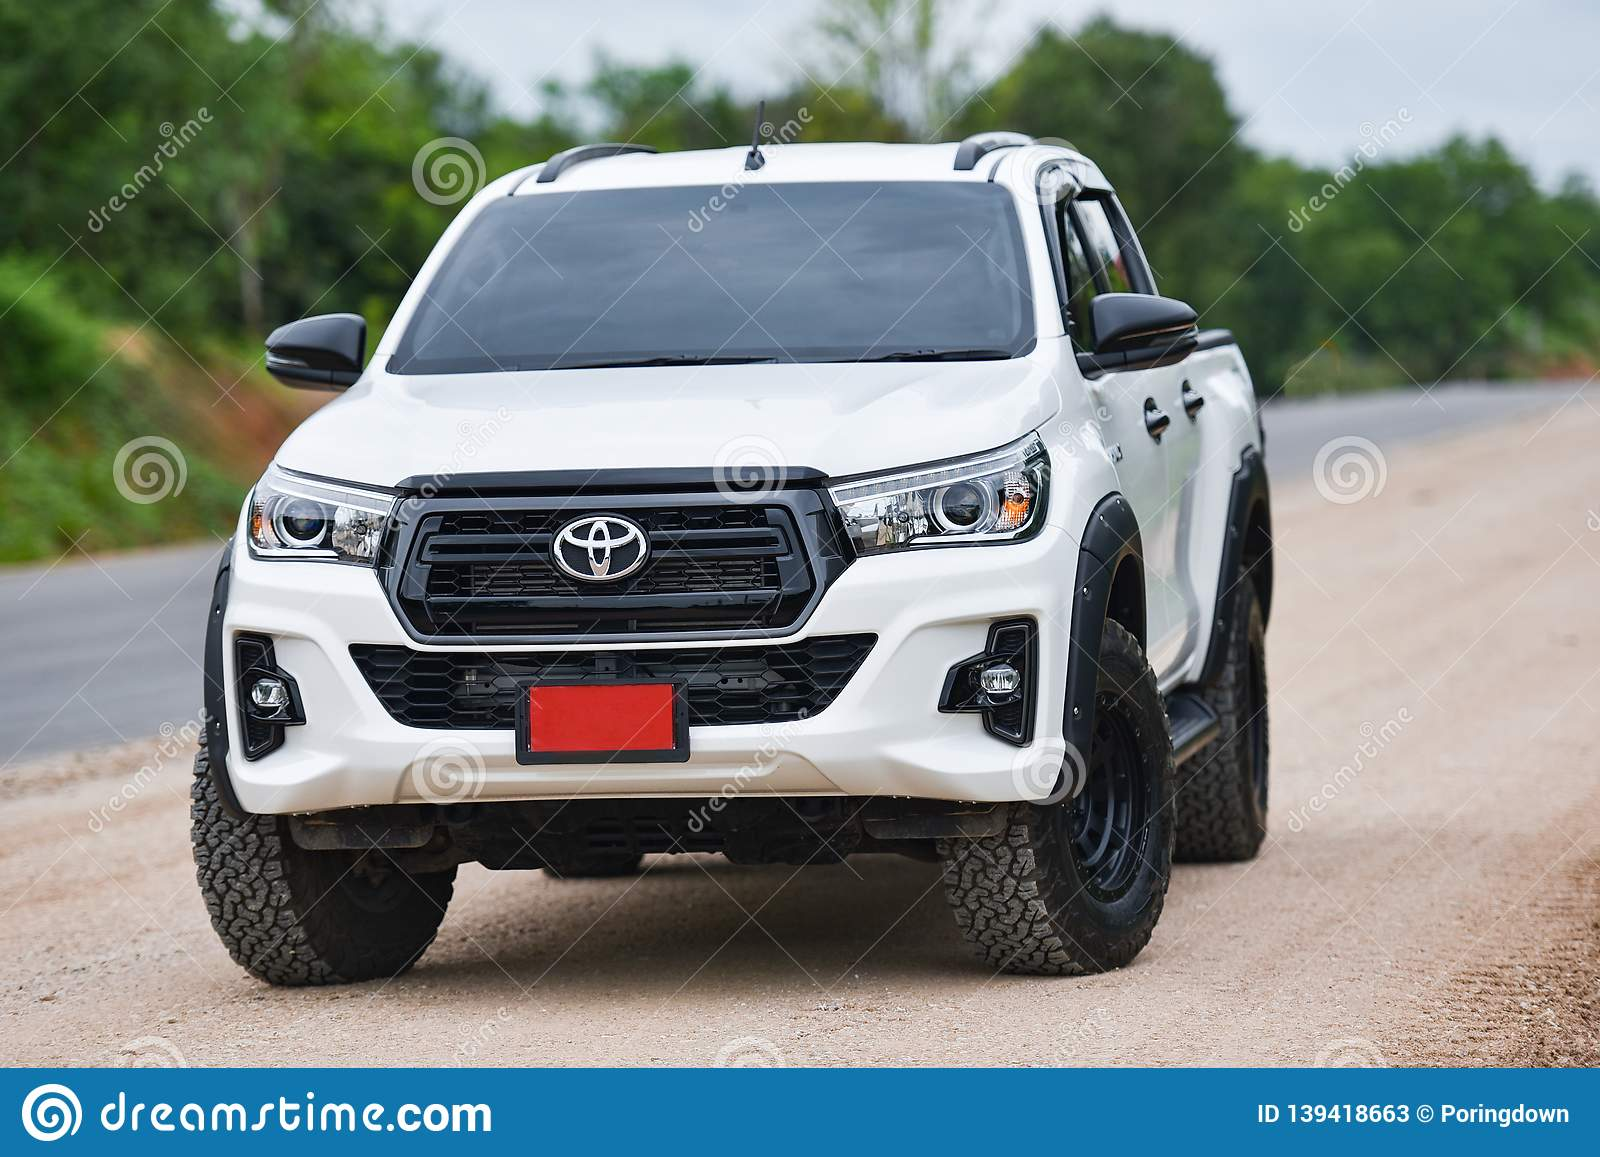 1 913 Toyota Hilux Photos Free Royalty Free Stock Photos From Dreamstime